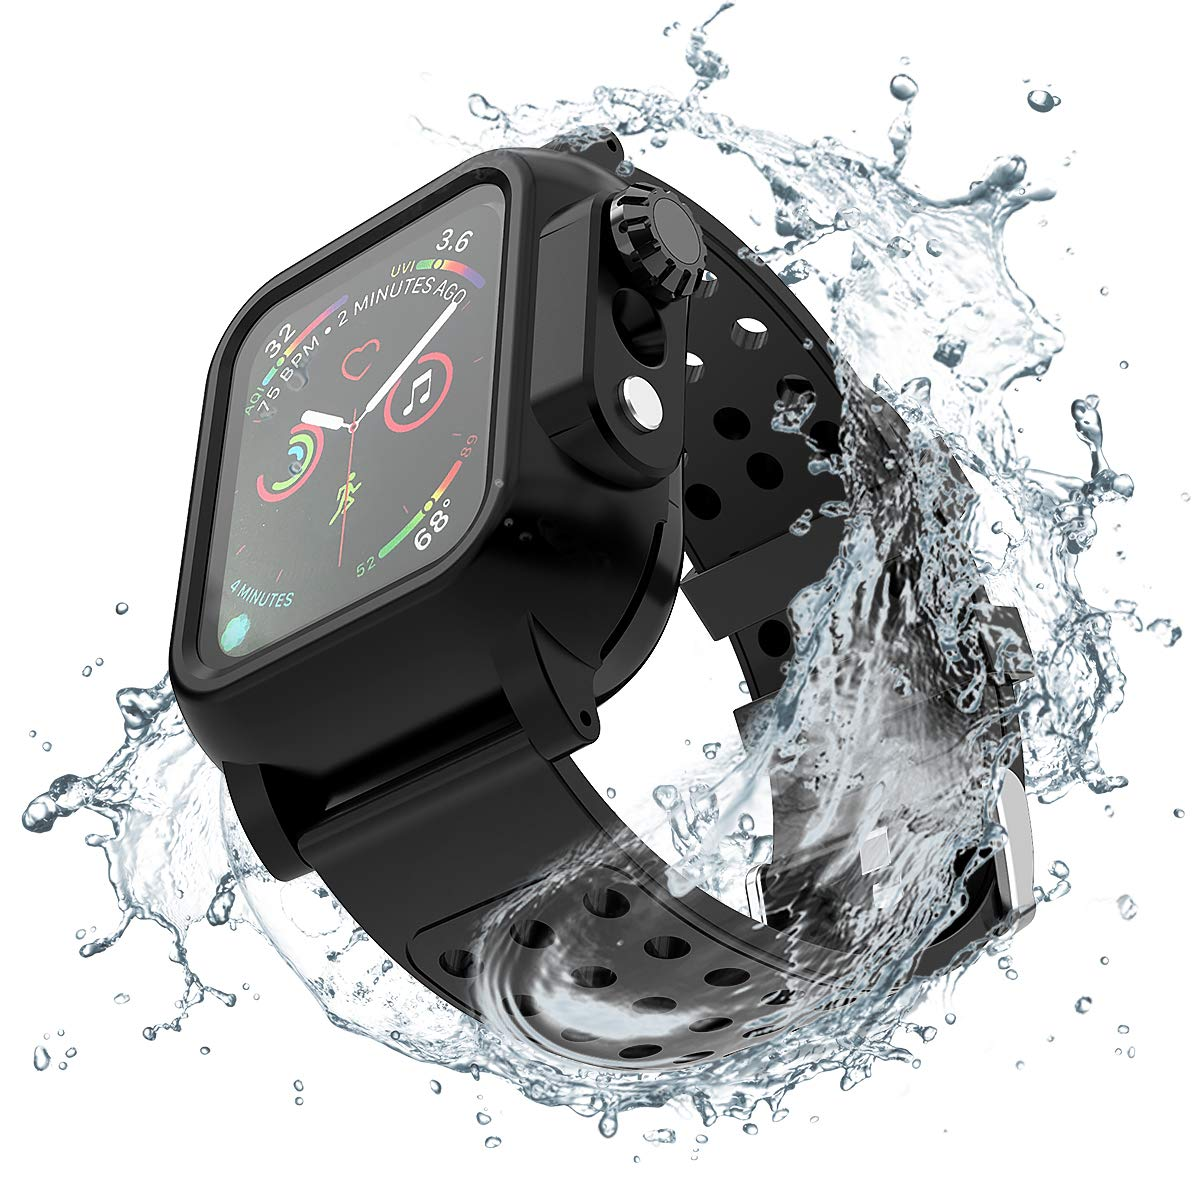 Lontect Compatible Apple Watch Series 4 44mm Waterproof Case with Soft Silicone Sport Band Full Body Protective Rugged Case Dust Proof Shockproof for Apple Watch Series 4 44mm, Black